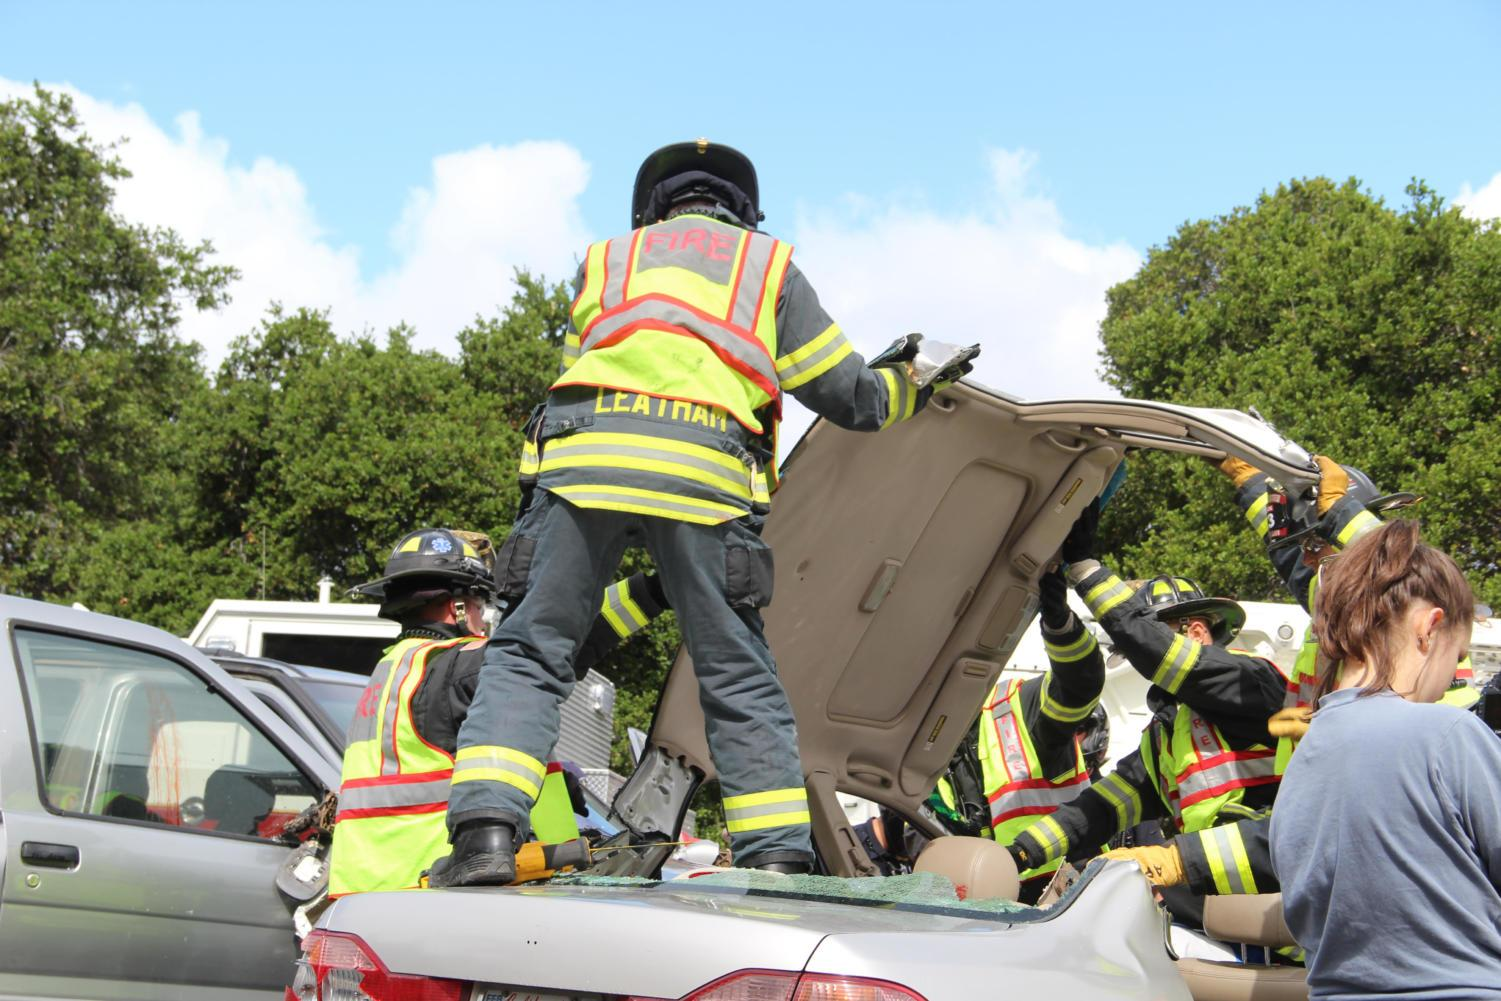 The+fire+department+removes+the+top+of+one+of+the+cars+in+order+to+retrieve+the+students+trapped+inside.